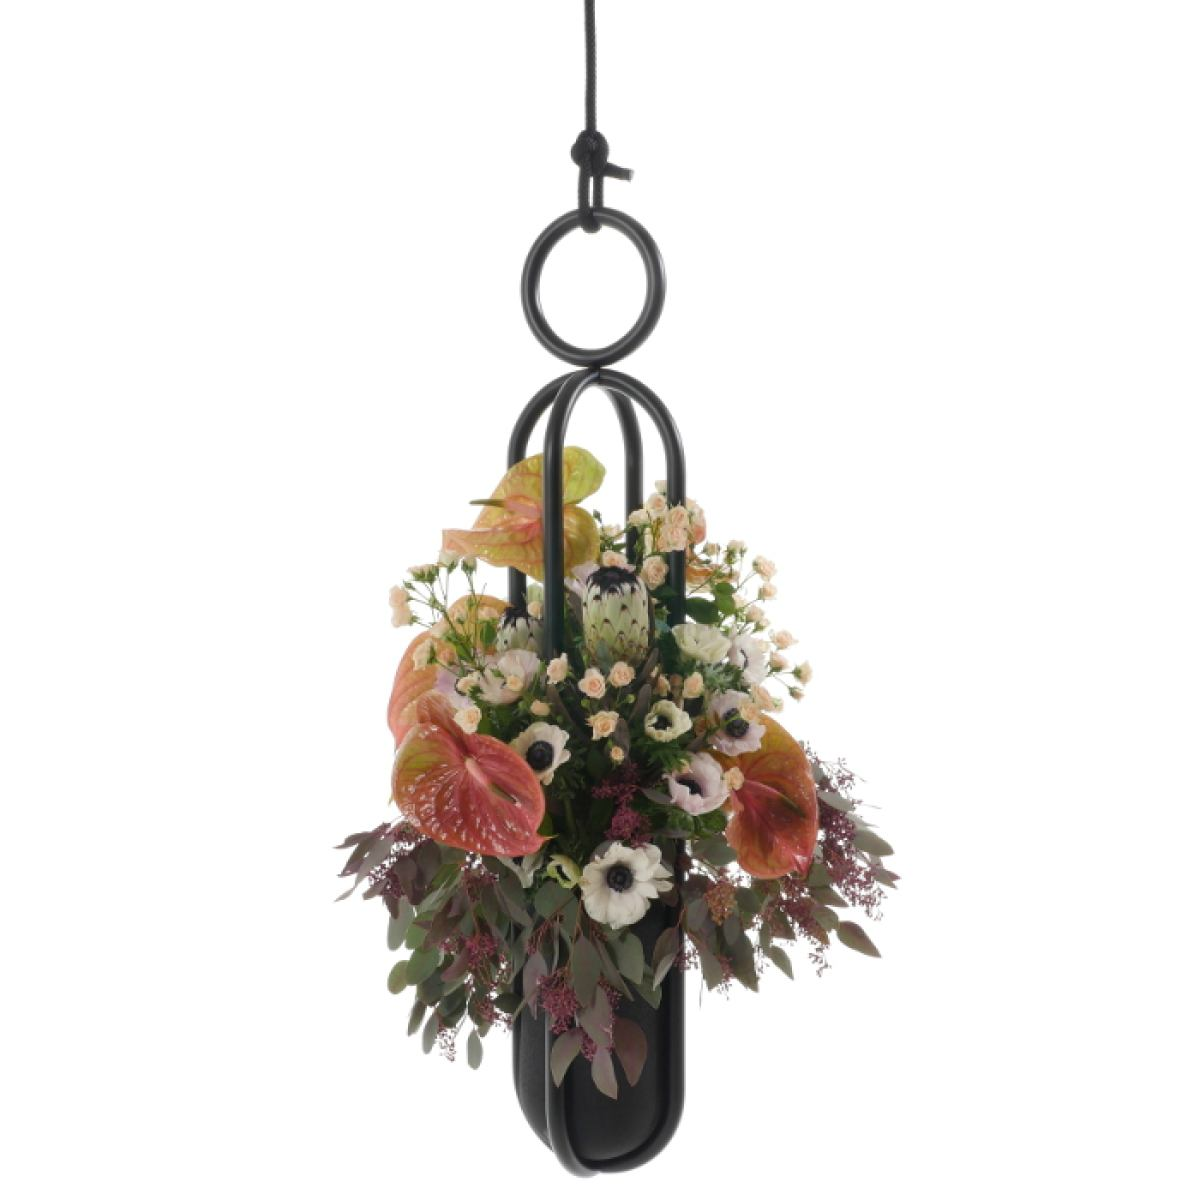 Upright flower suspension (pot or vase) with handmade rubber container